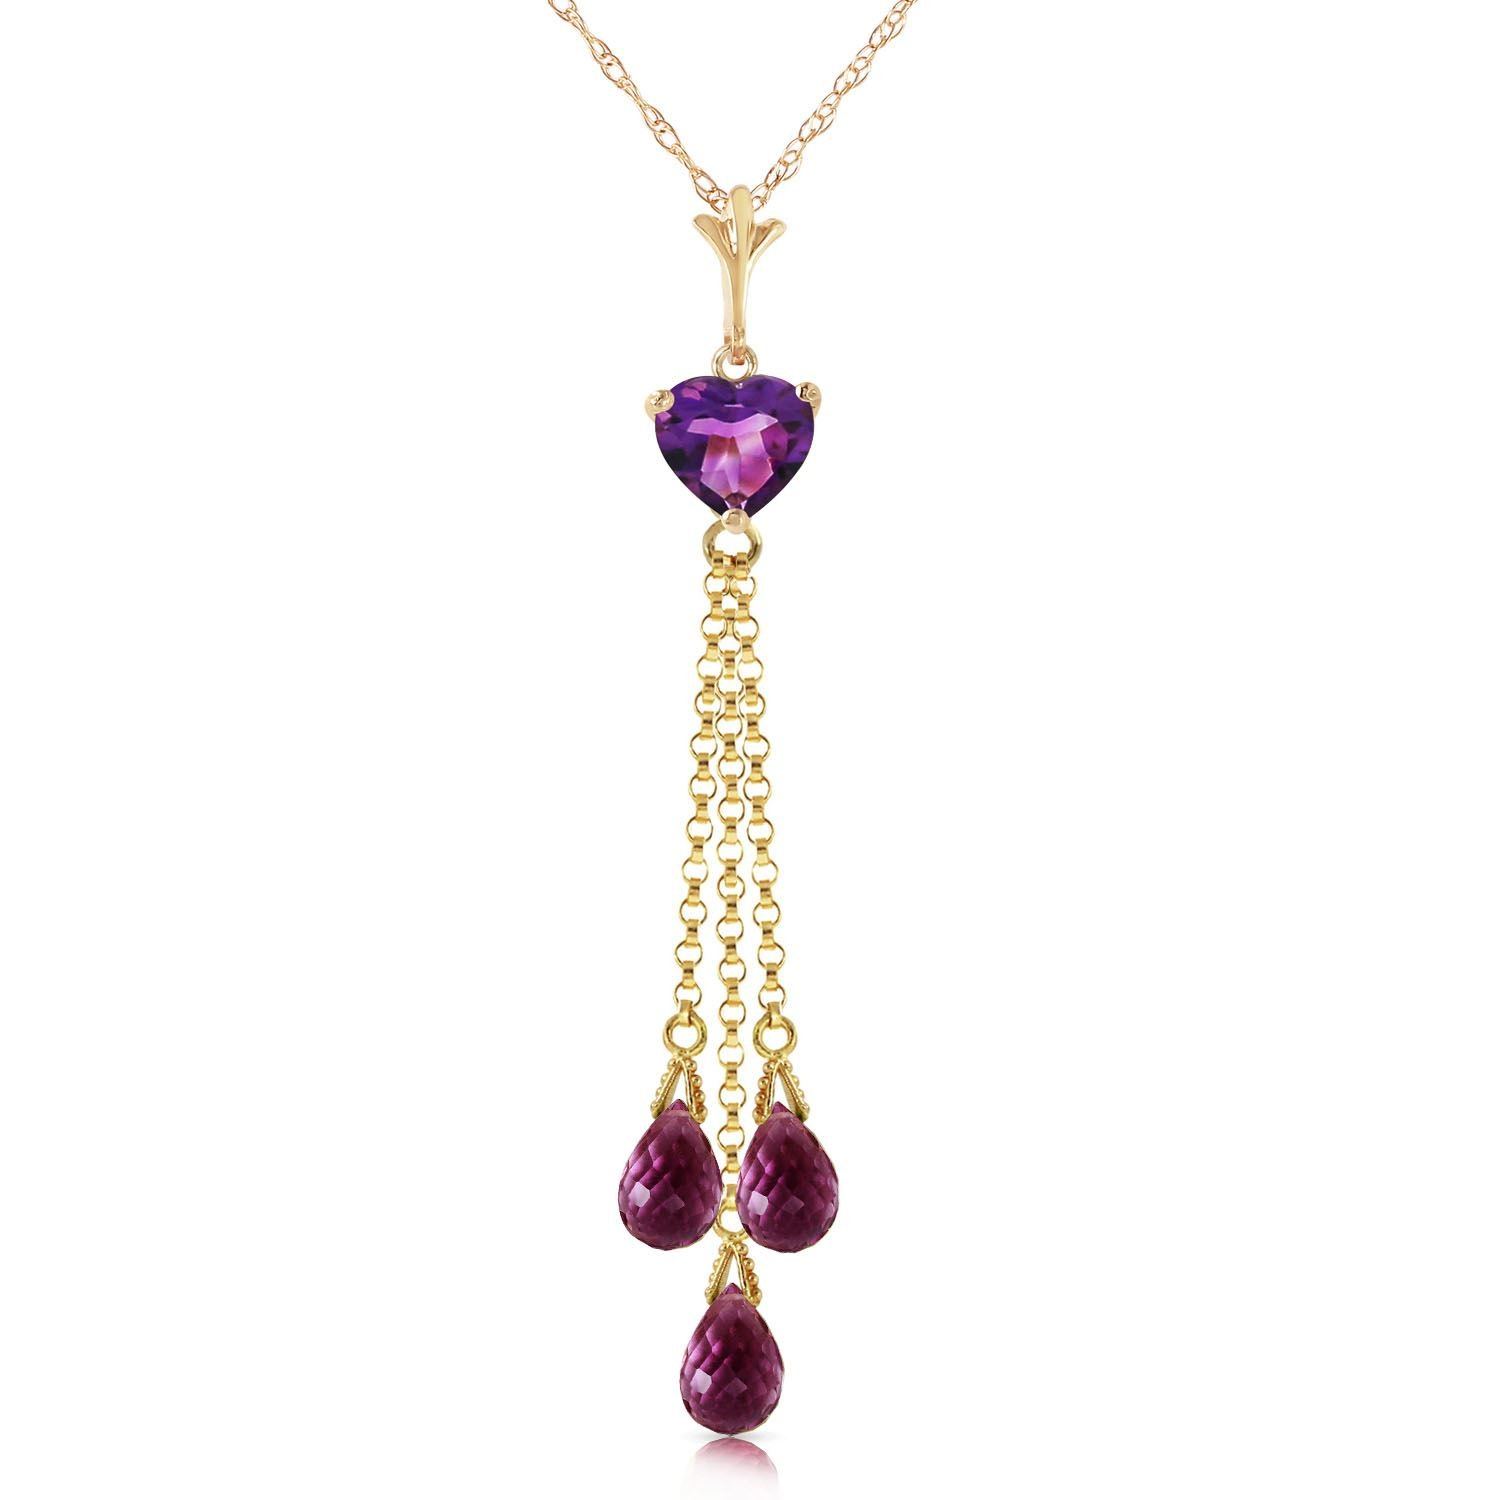 ALARRI 4.75 CTW 14K Solid Gold Always Love Amethyst Necklace with 22 Inch Chain Length